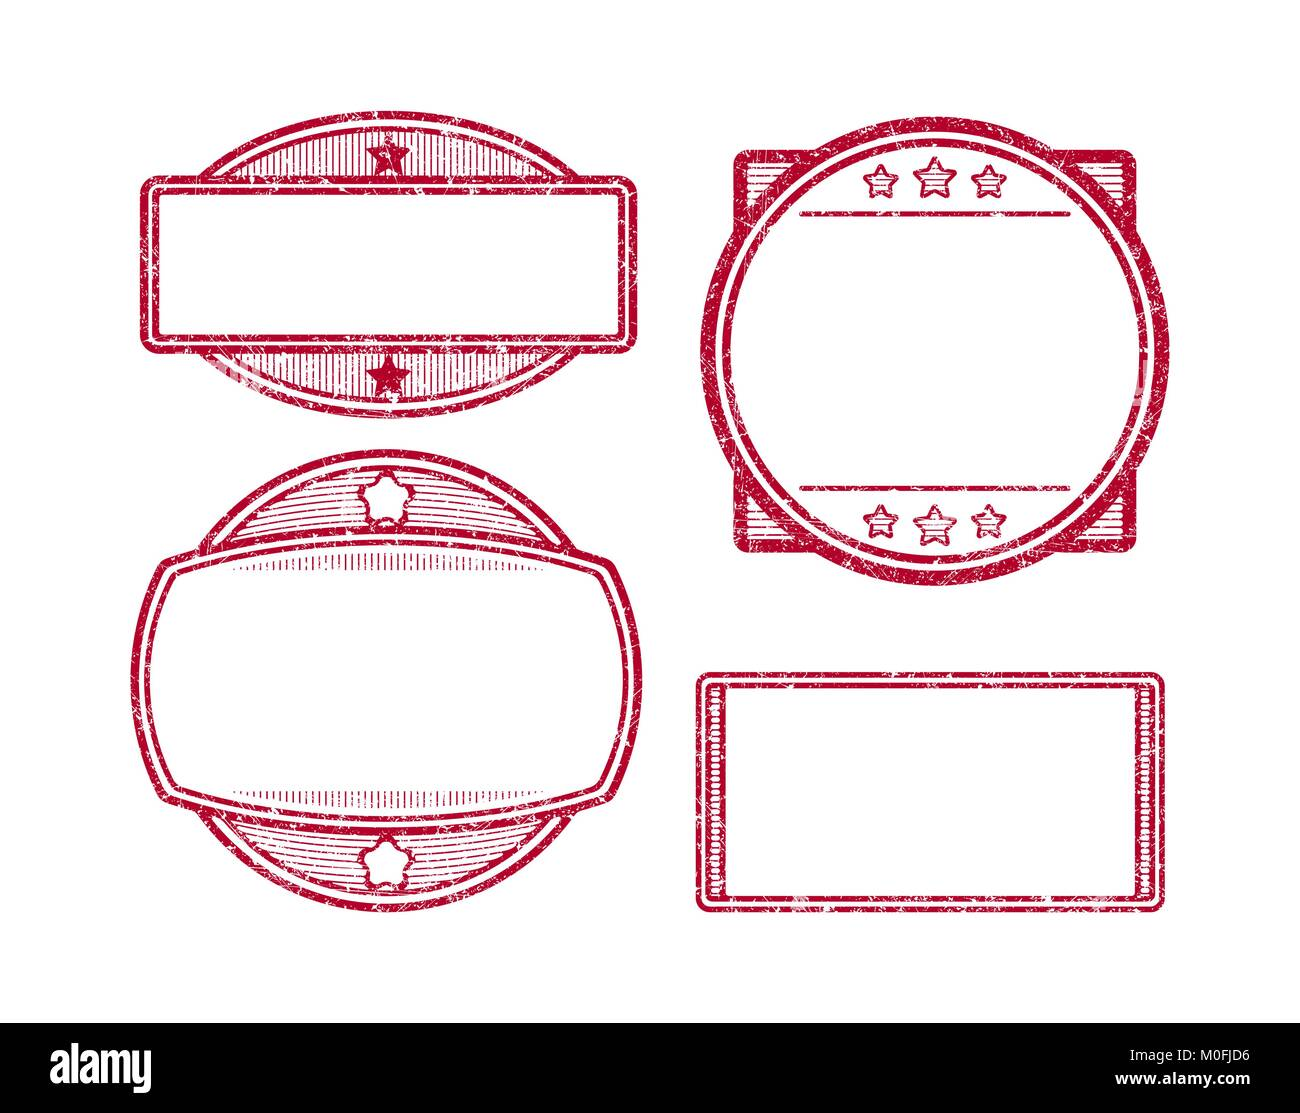 set of 4 rubber stamps templates stock vector art illustration